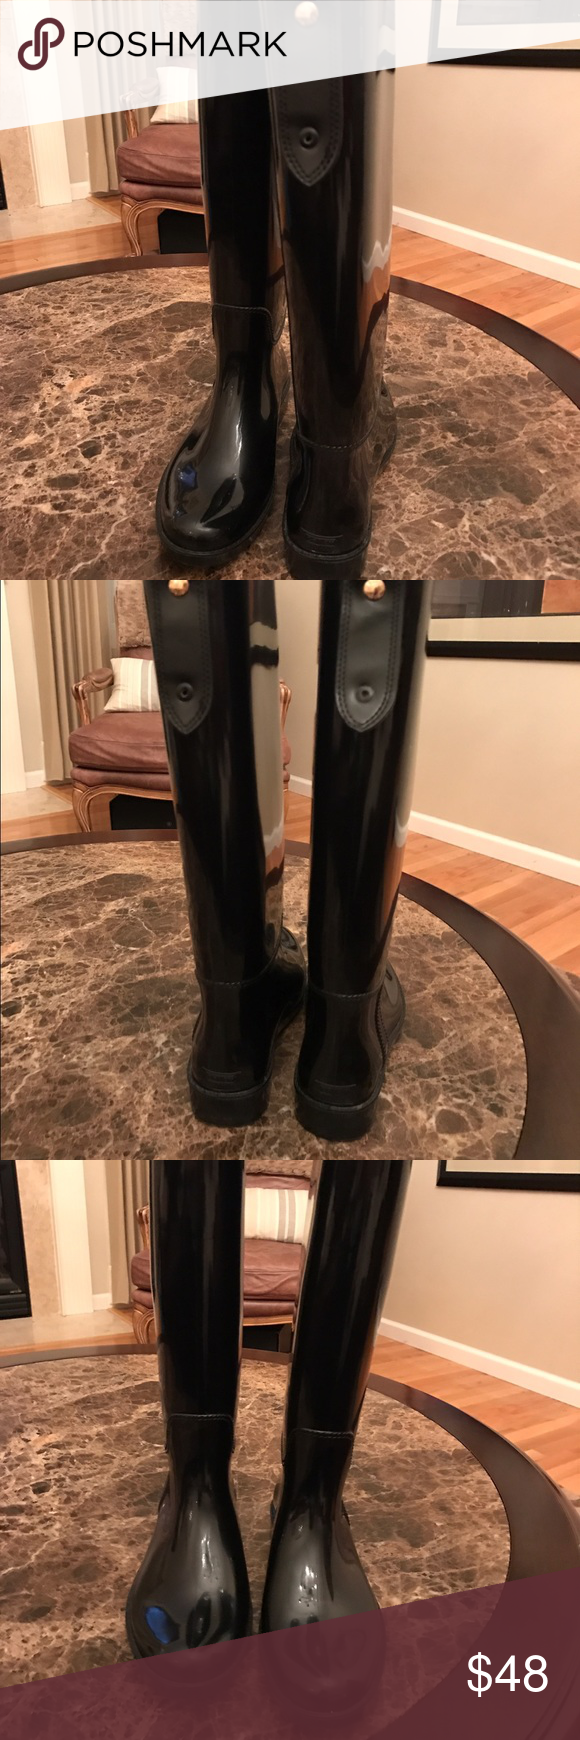 Coach Rain Boots Coach Rain Boots. Worn one. April Showers are coming, be ready. Coach Shoes Winter & Rain Boots